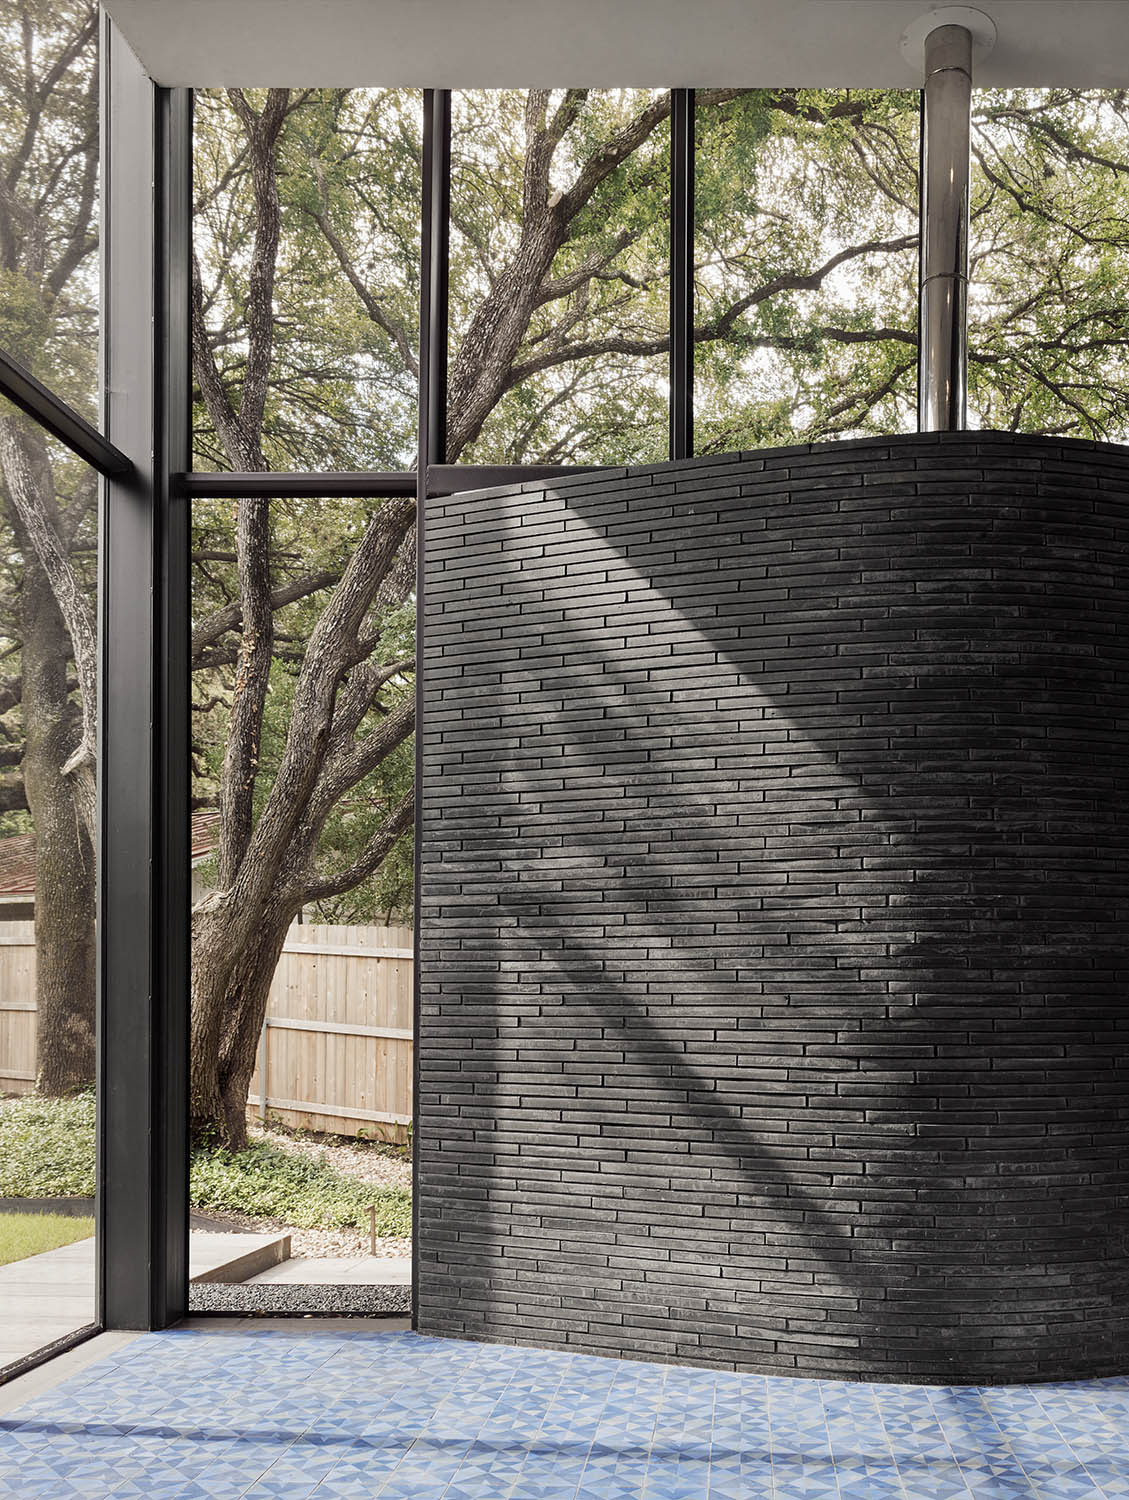 Detail of Curved Brick Photo by Casey Dunn}